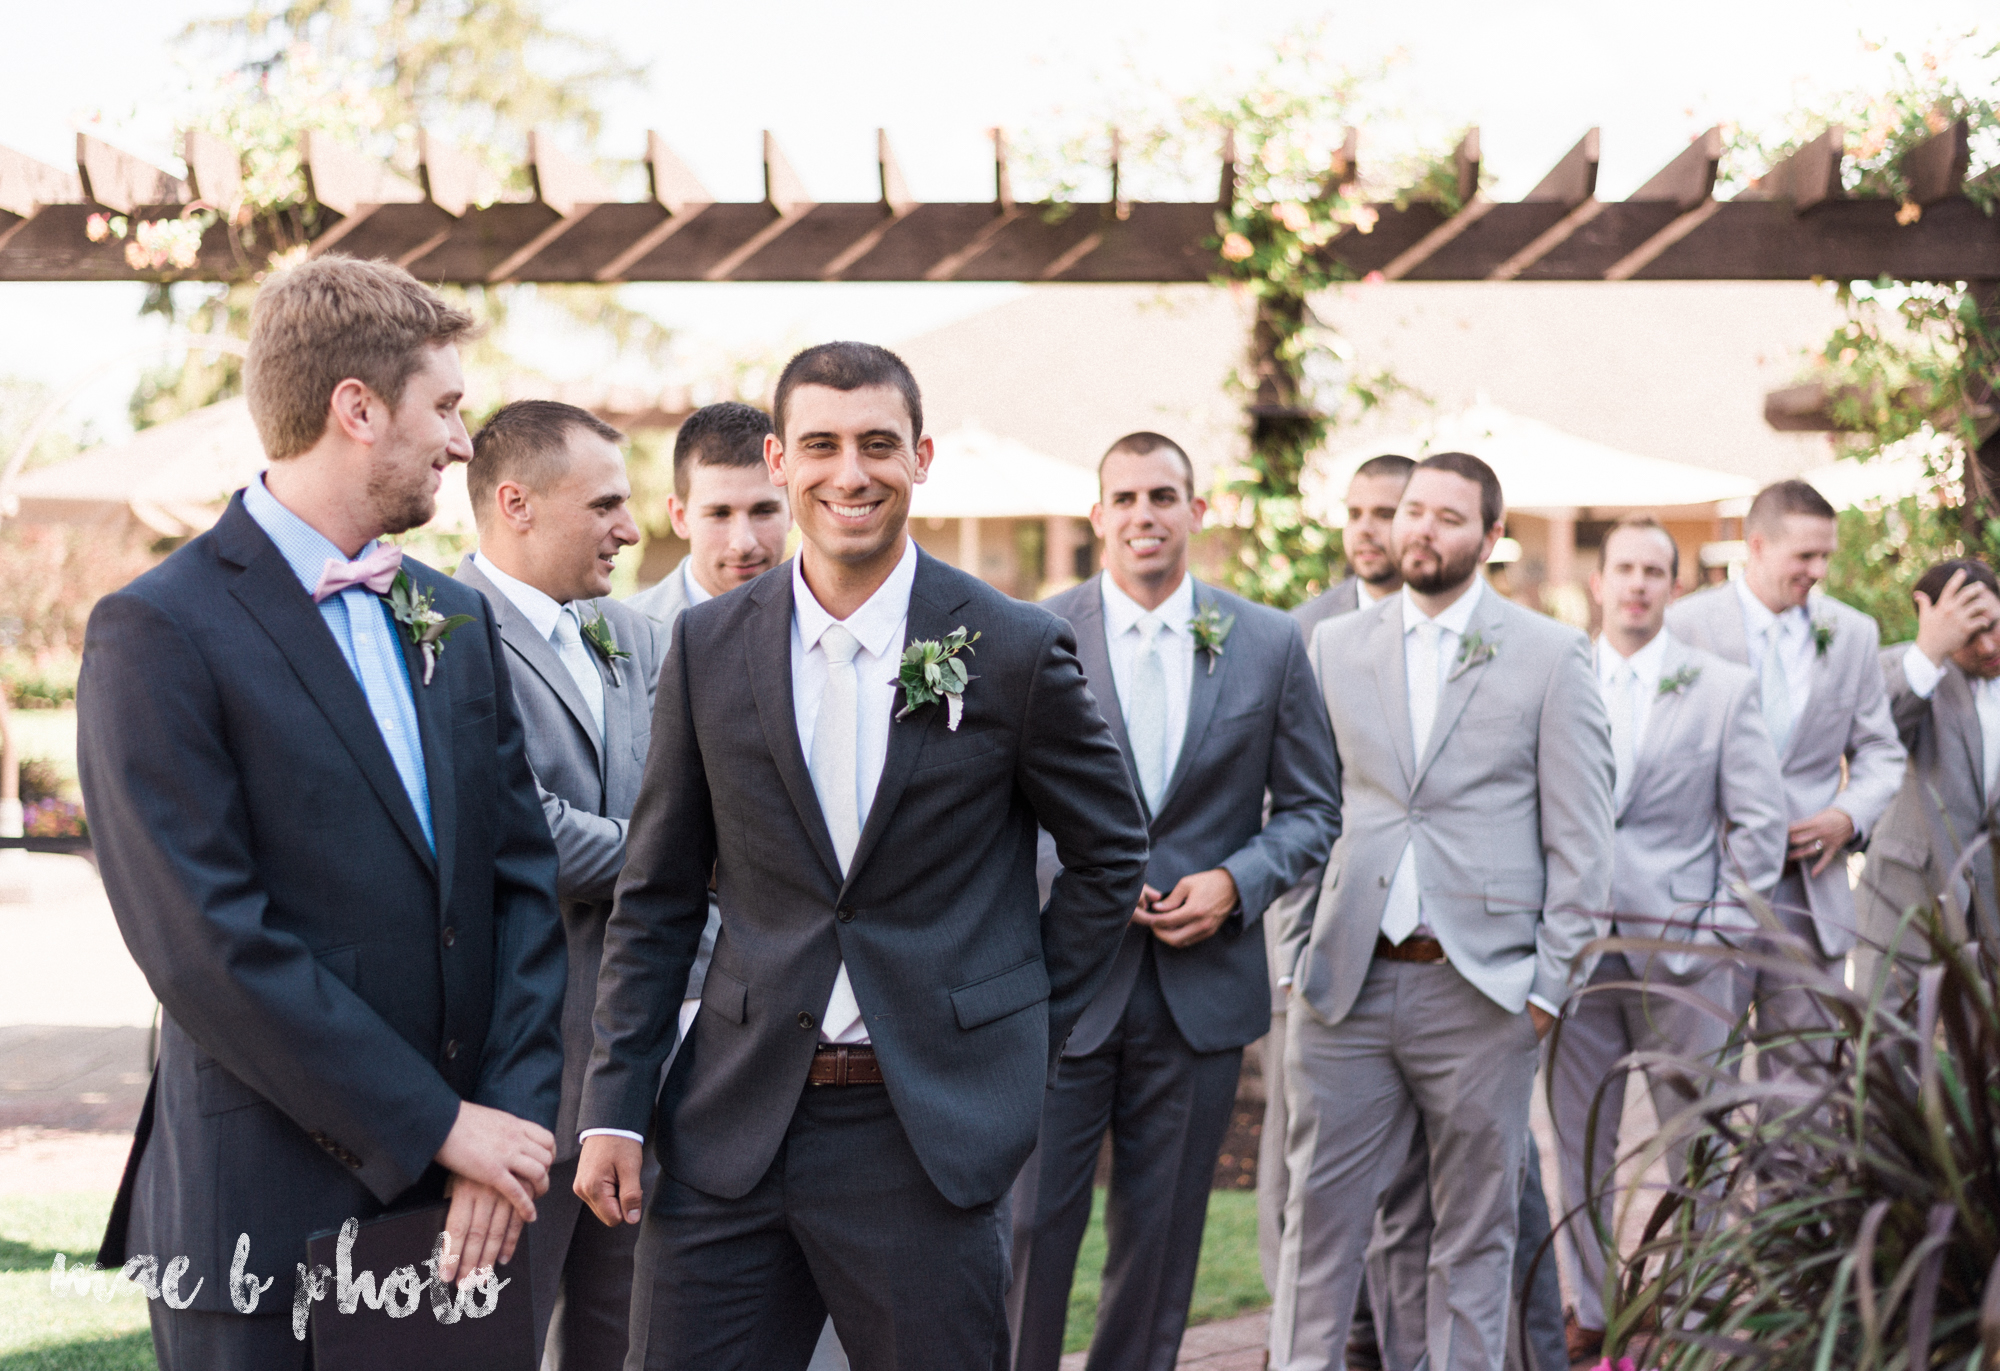 emily and michael's industrial chic summer country club wedding at the lake club in poland ohio photographed by cleveland wedding photographer mae b photo-93.jpg